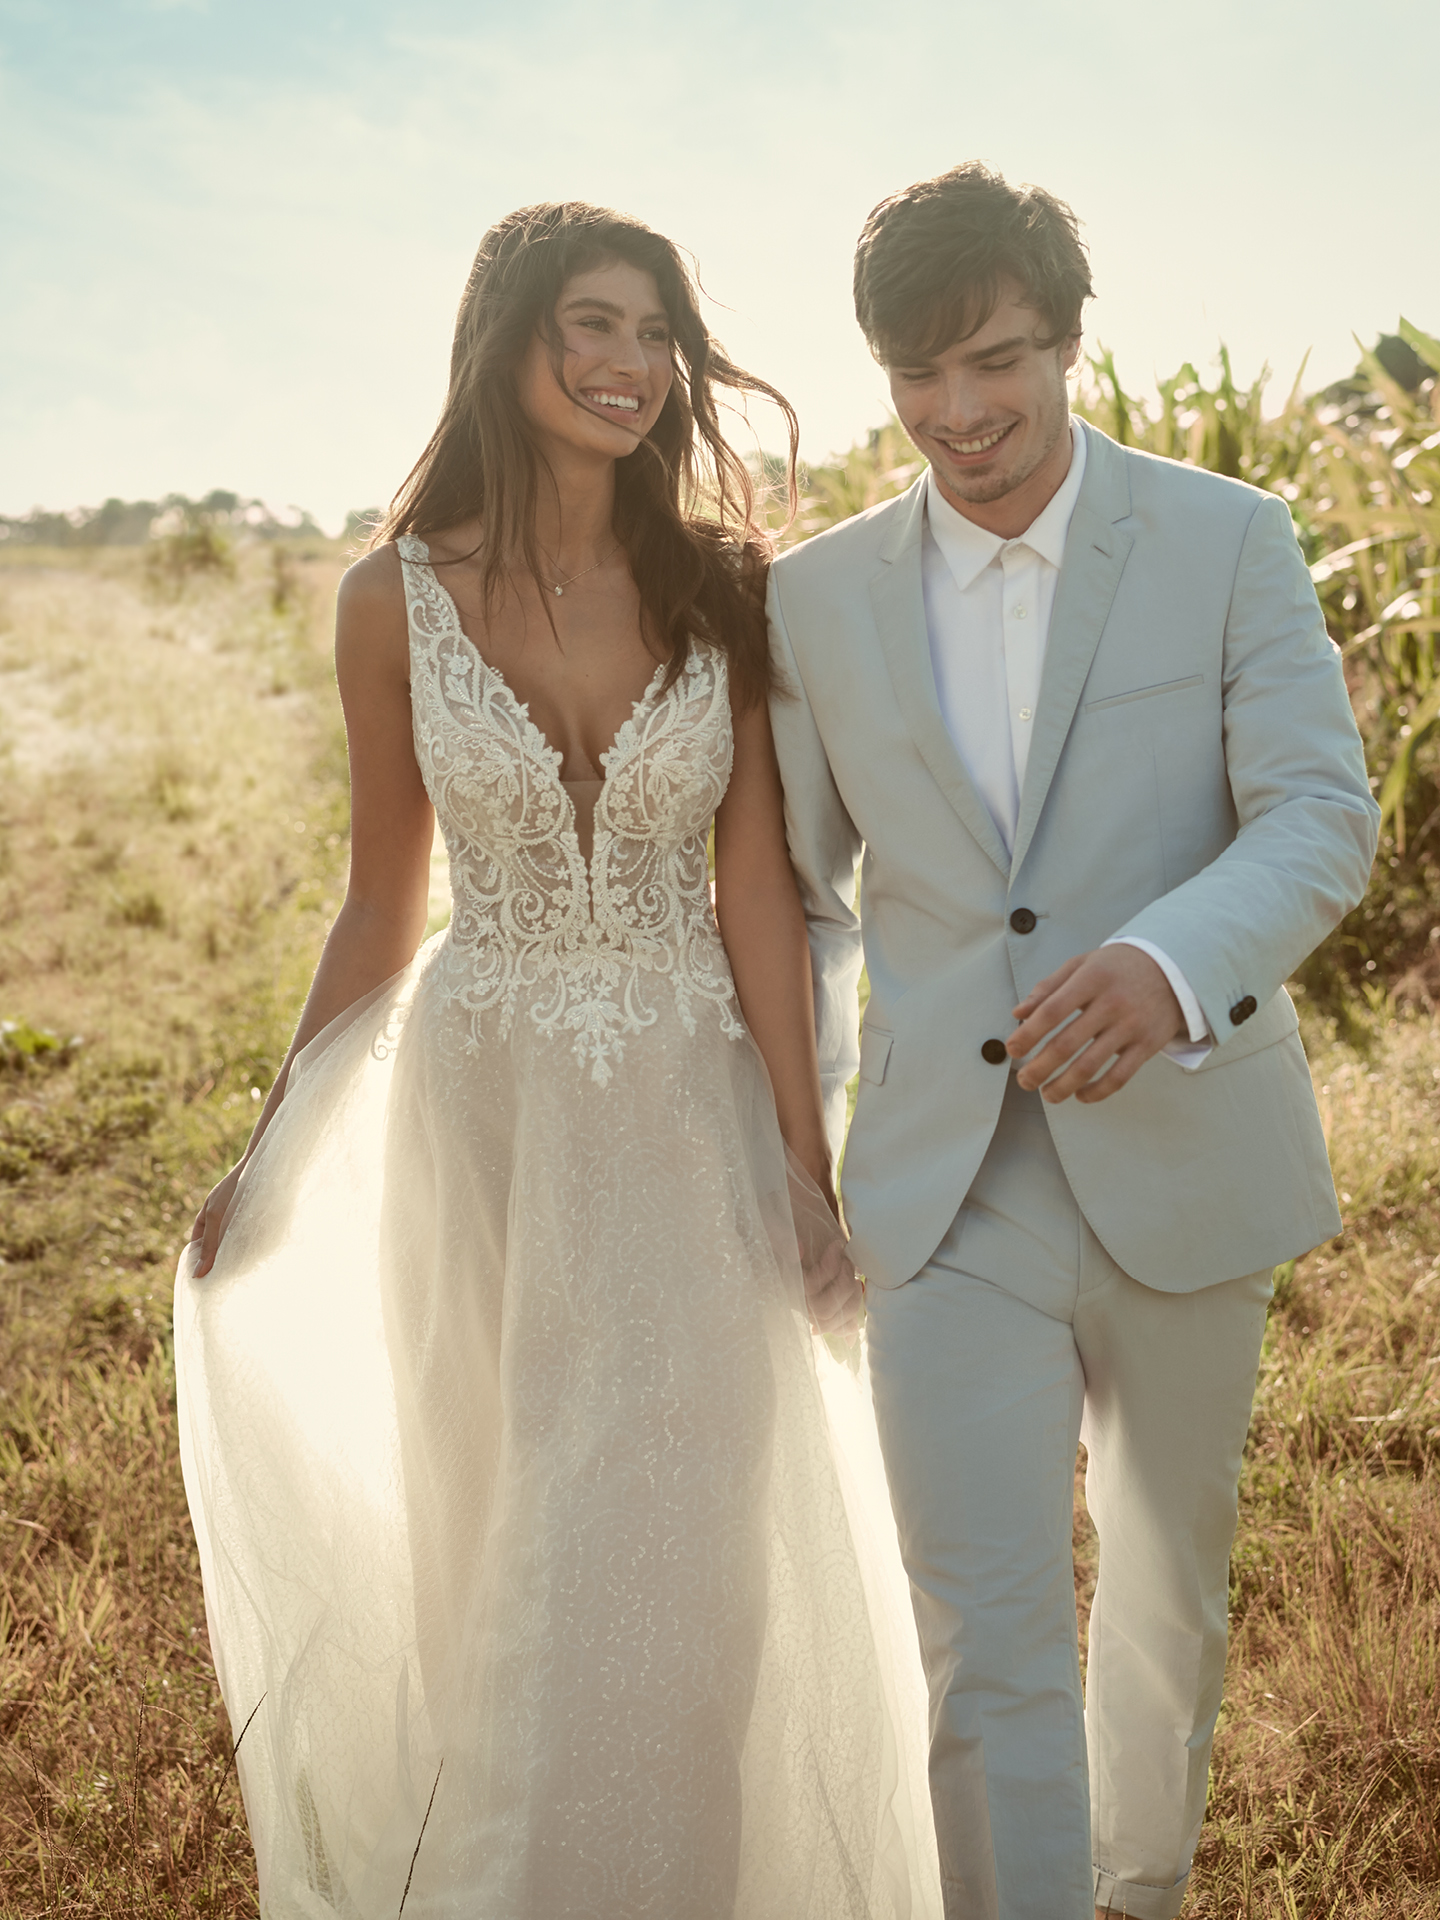 Groom Walking with Bride Wearing Sparkly Tulle Ball Gown Wedding Dress Called Melissa by Rebecca Ingram